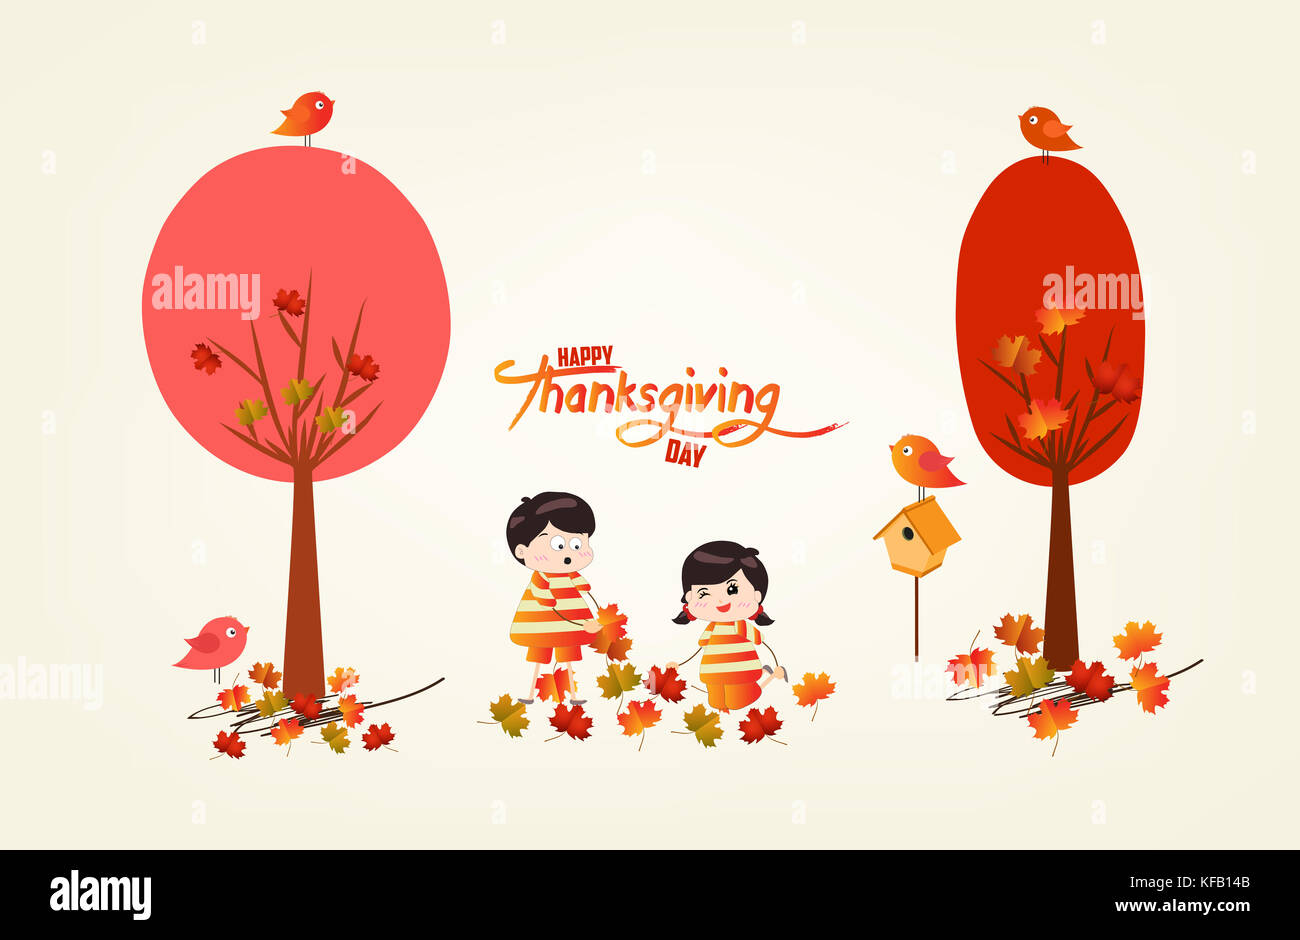 Happy Thanksgiving Day Funny Kids Of A Forest In Autumn With Leaves Stock Photo Alamy